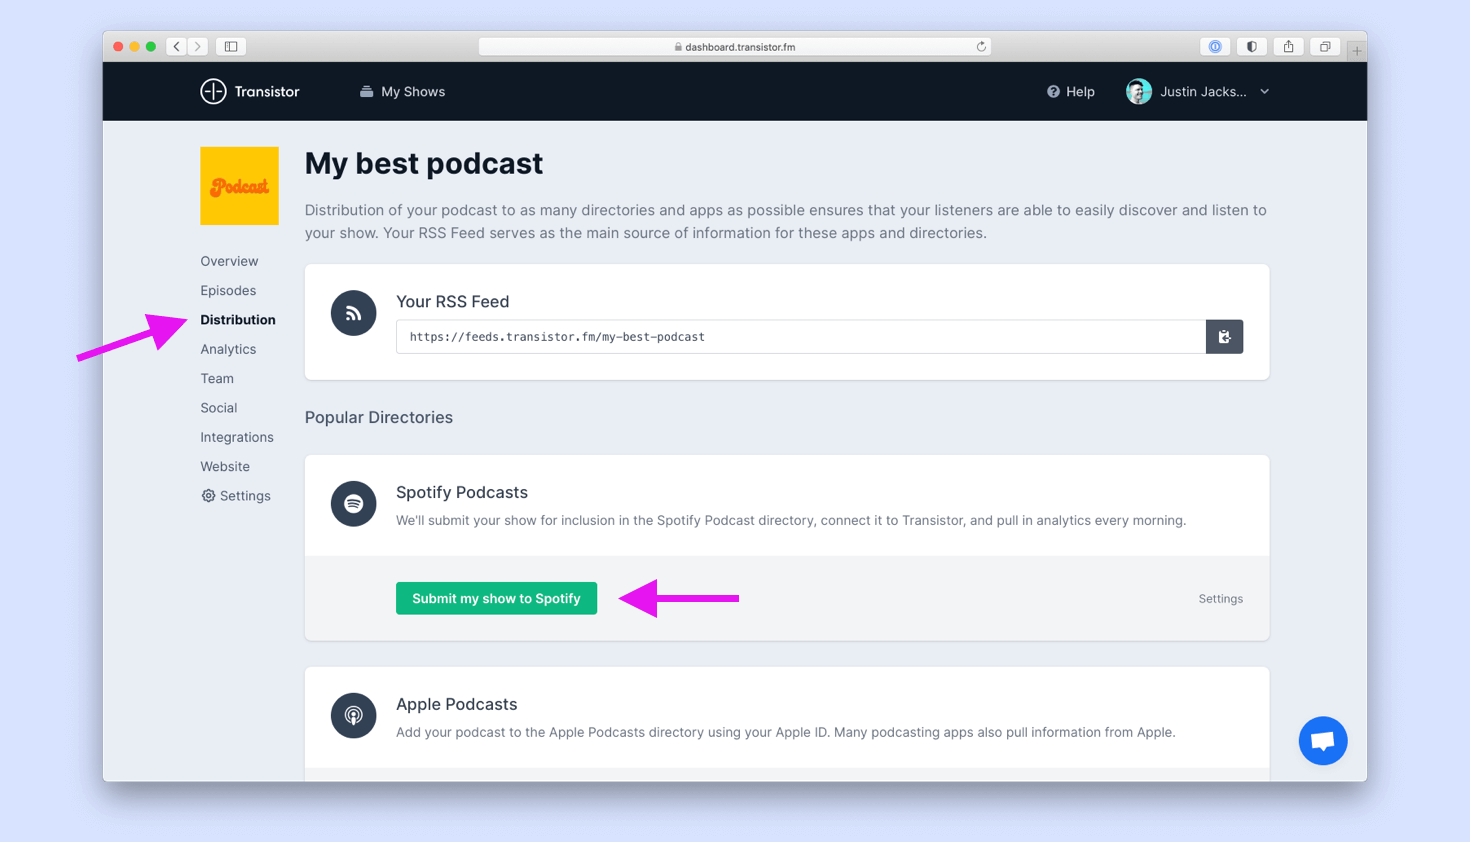 Easily submit your podcast to Spotify and Apple Podcasts